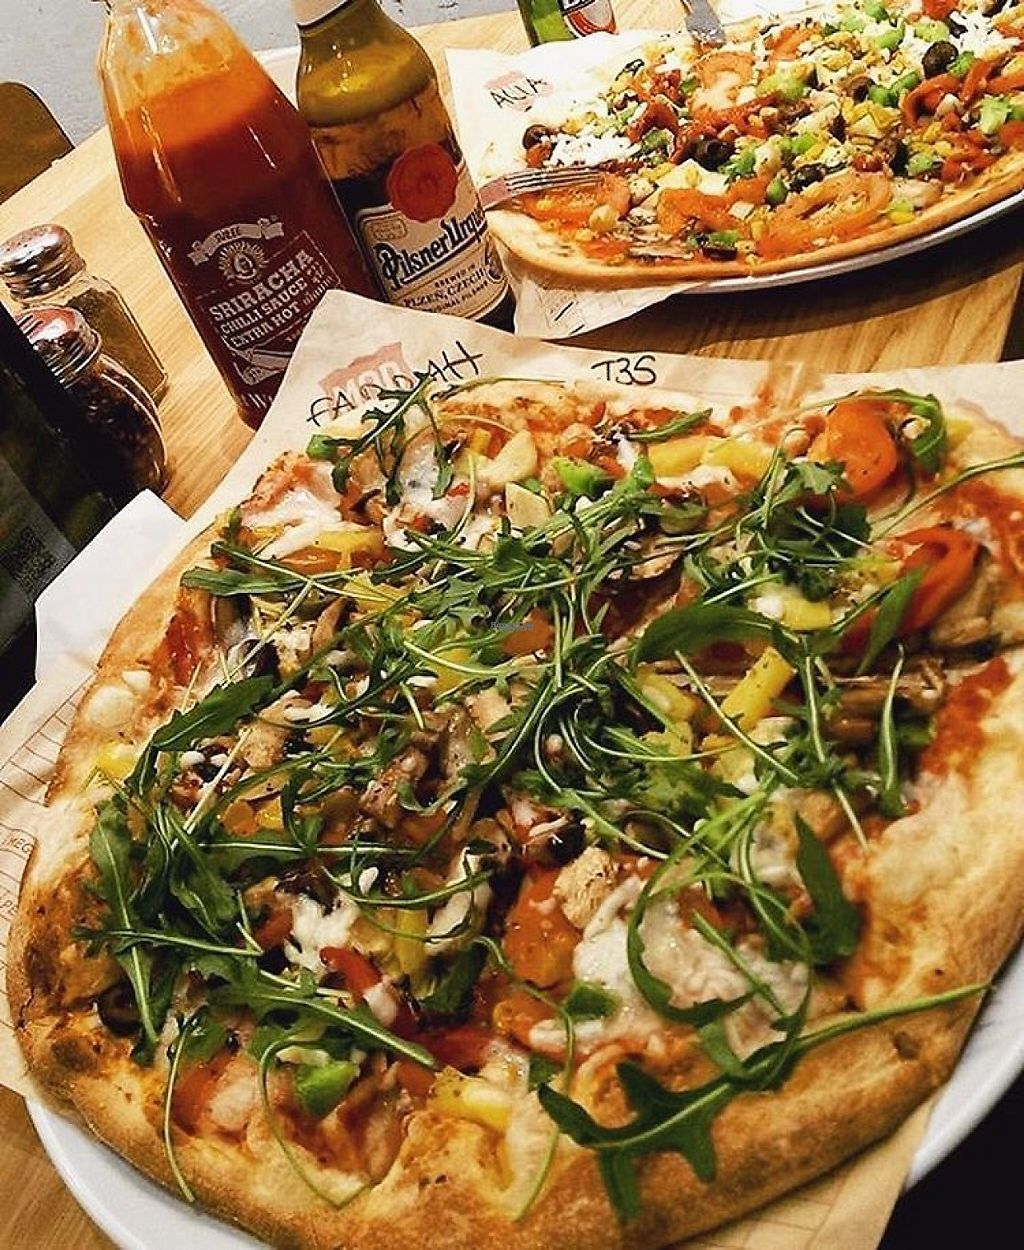 """Photo of Mod Pizza  by <a href=""""/members/profile/NicMOD"""">NicMOD</a> <br/>Build your own vegan pizza, with unlimited toppings and dairy free cheese!  <br/> February 15, 2017  - <a href='/contact/abuse/image/87204/226849'>Report</a>"""